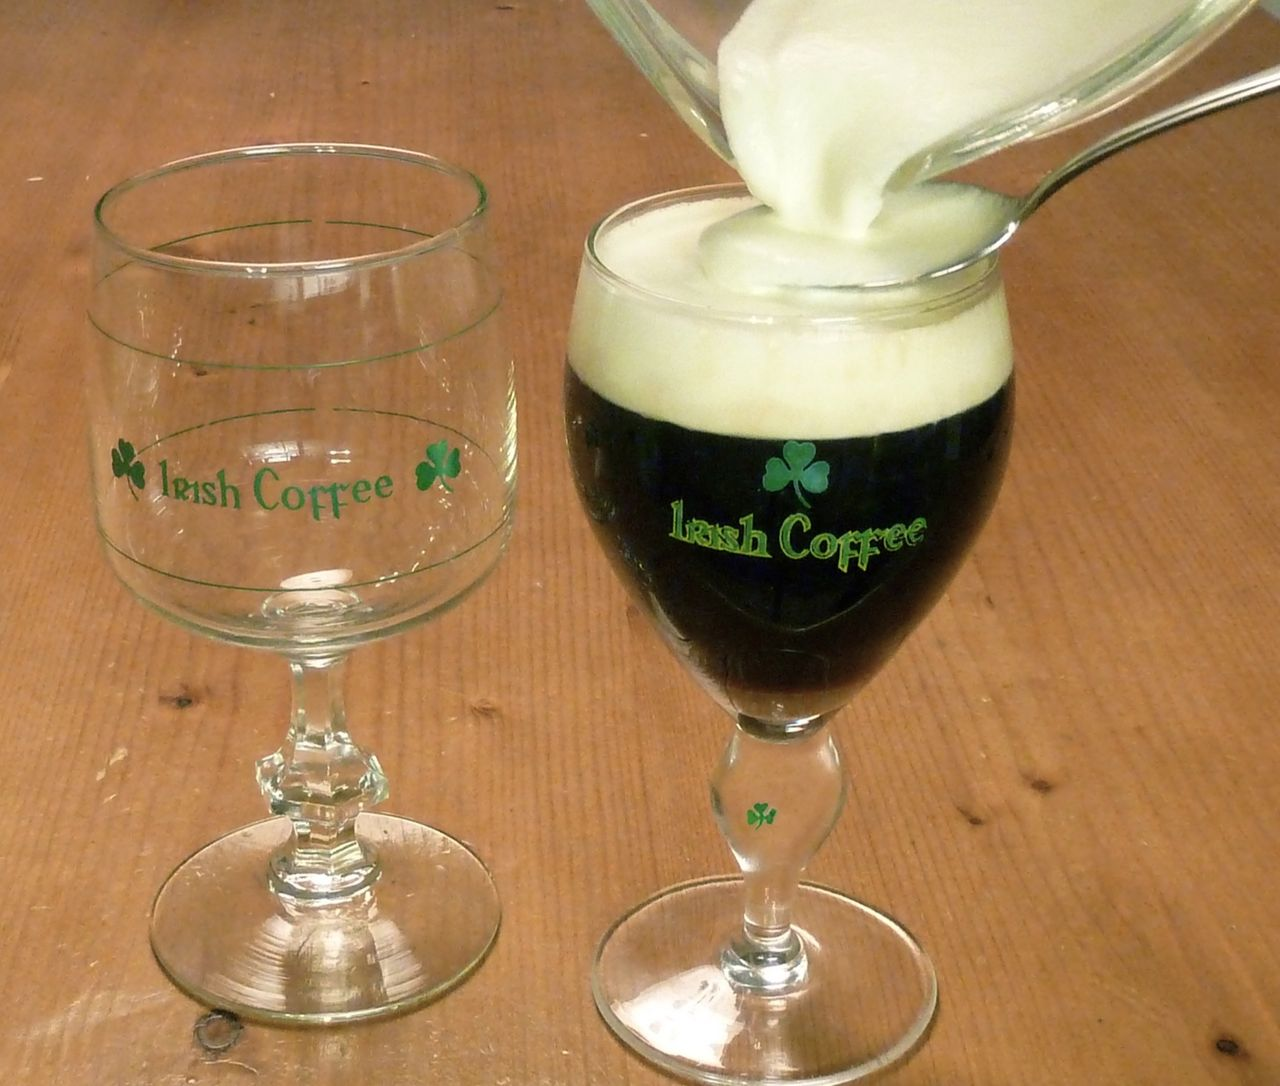 Tut i luren! Idag är det National Irish Coffee Day!